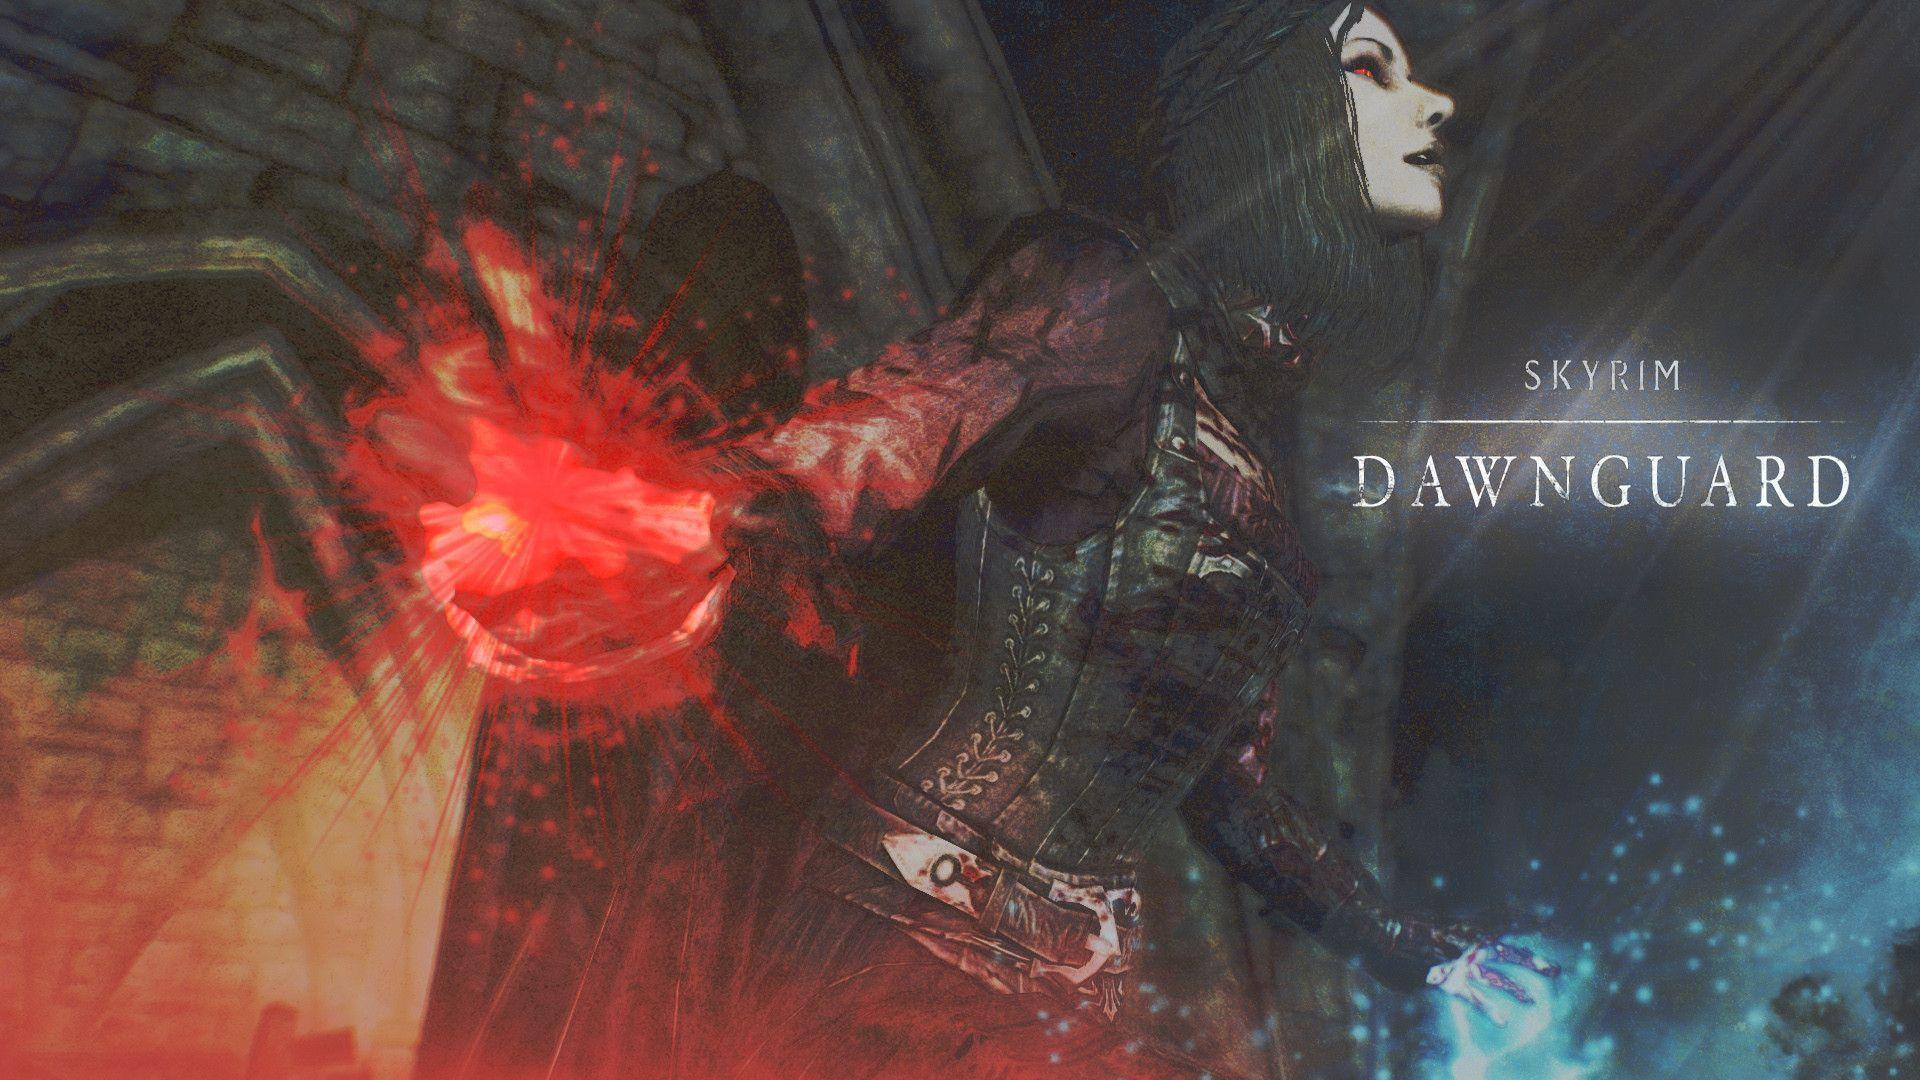 Dawnguard wallpapers wallpaper cave skyrim dawnguard wallpapers wallpaper cave voltagebd